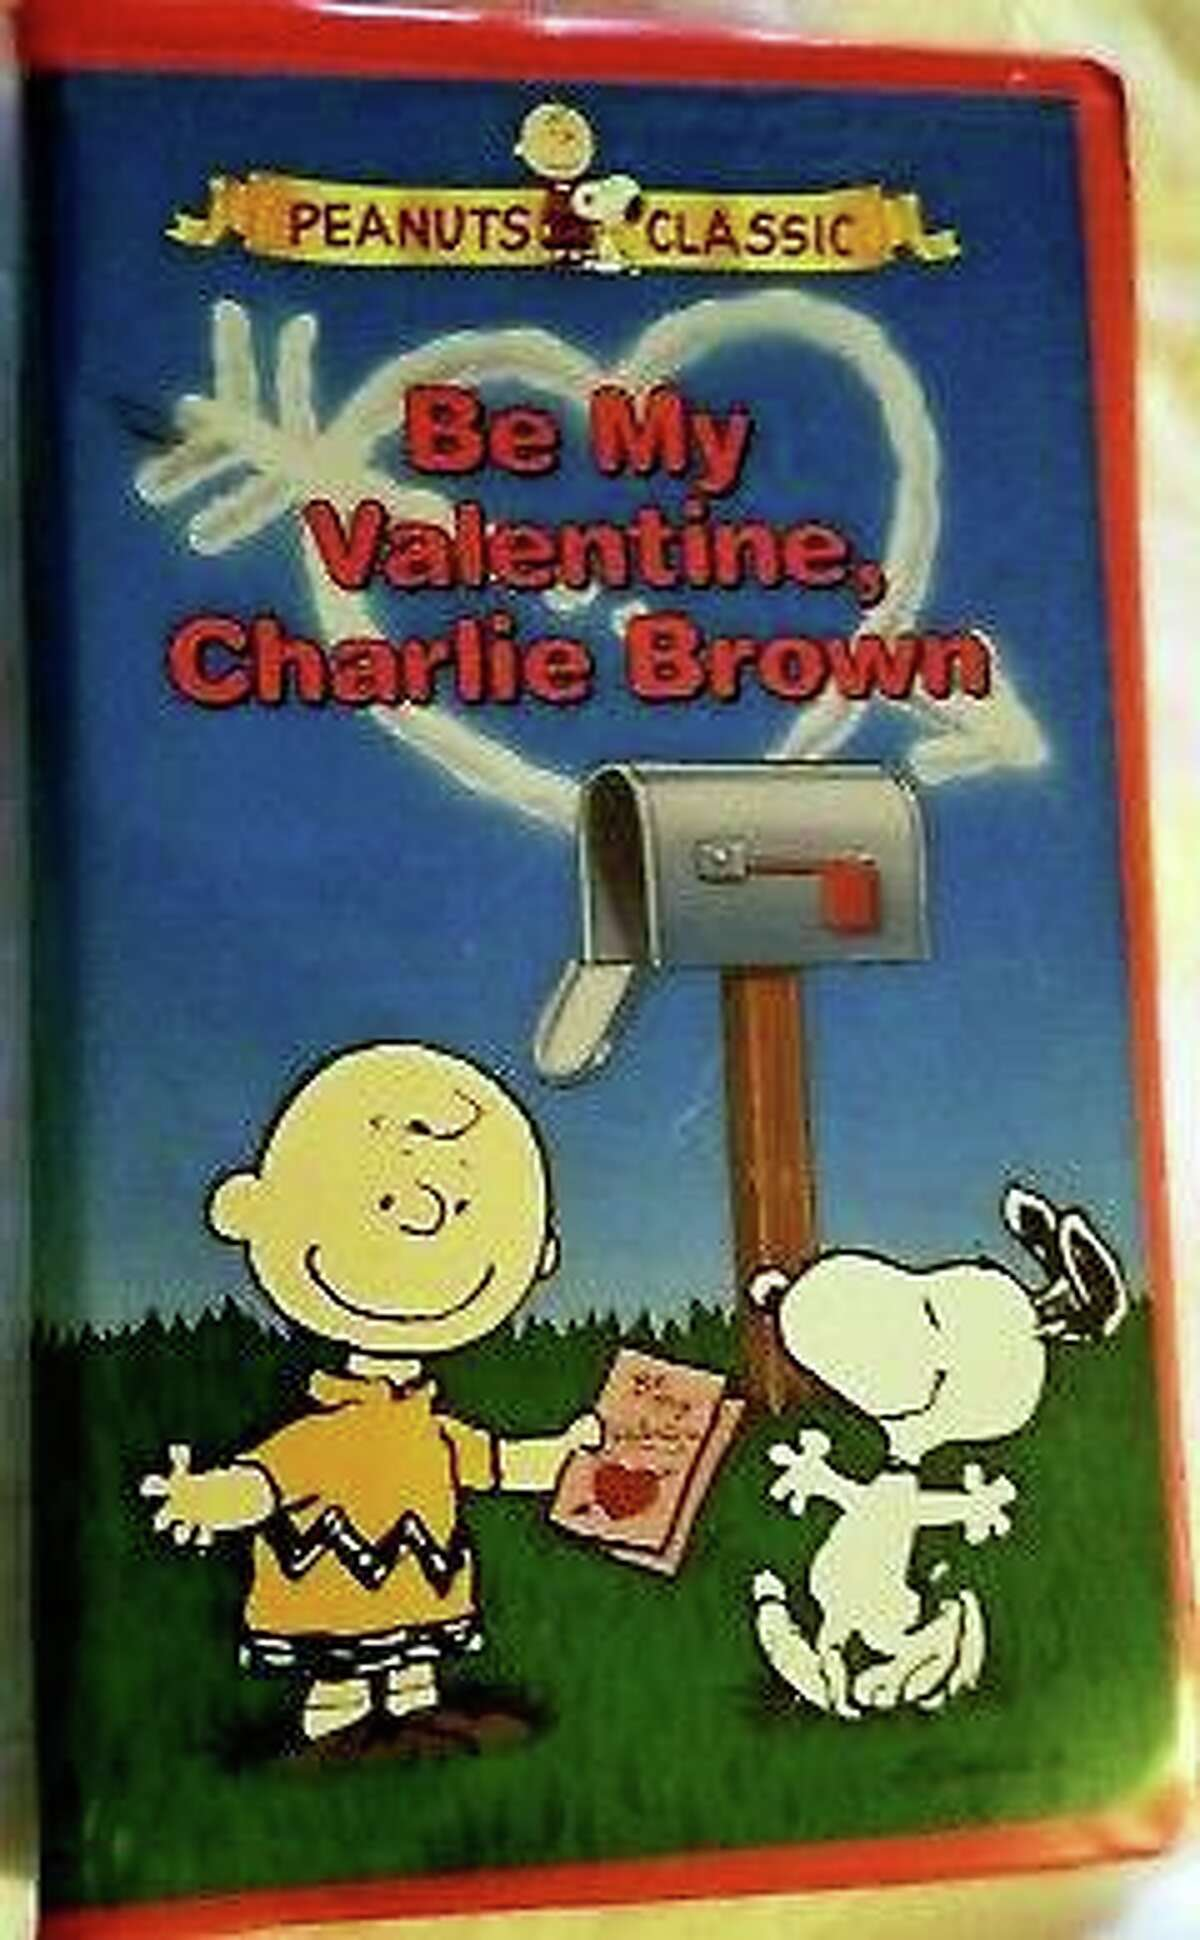 The writer has fond memories of This Charlie Brown special.